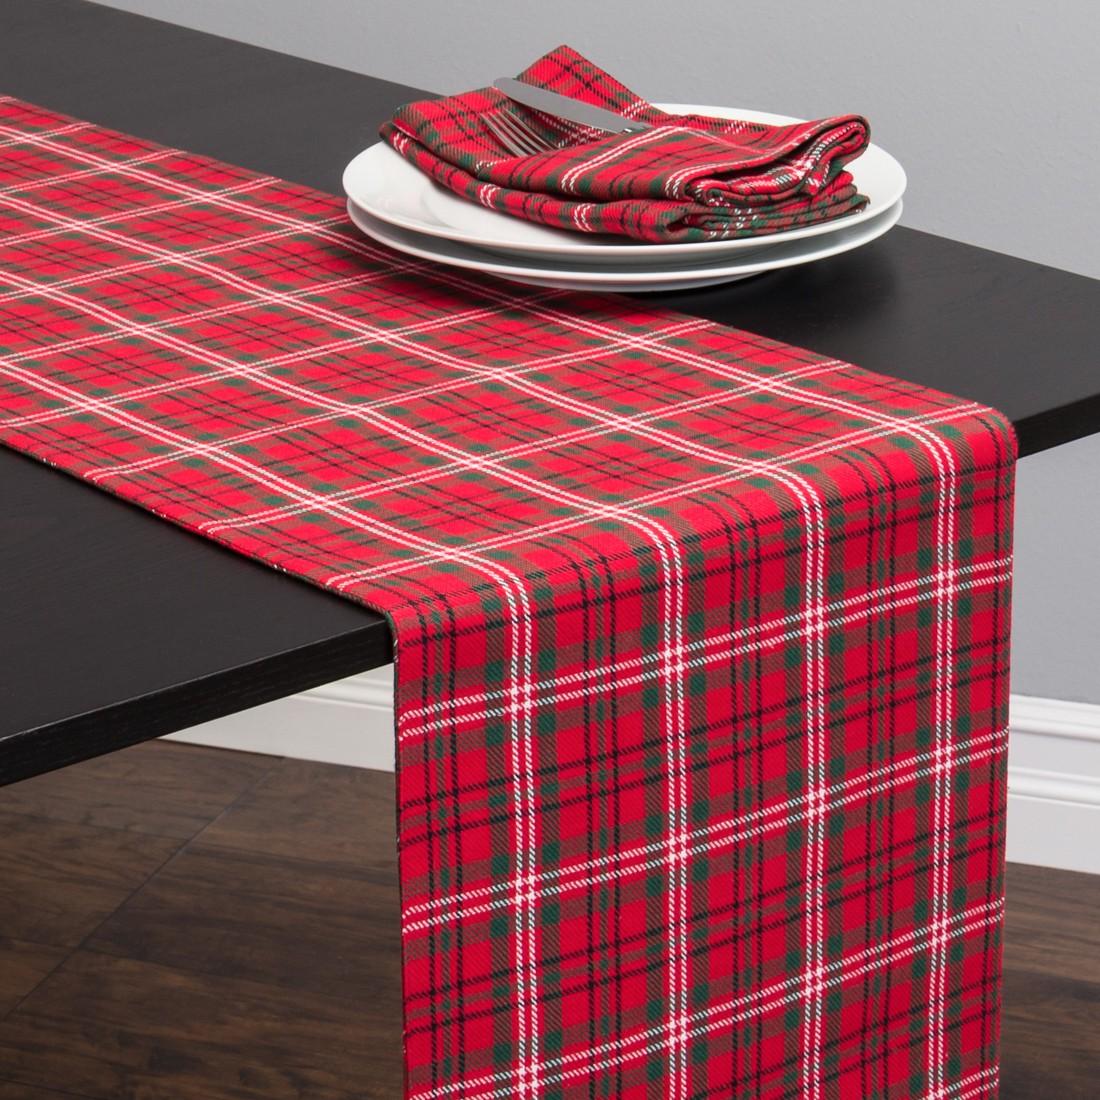 Beau Linen Tablecloth Holiday Plaid Table Runner, Red And Green